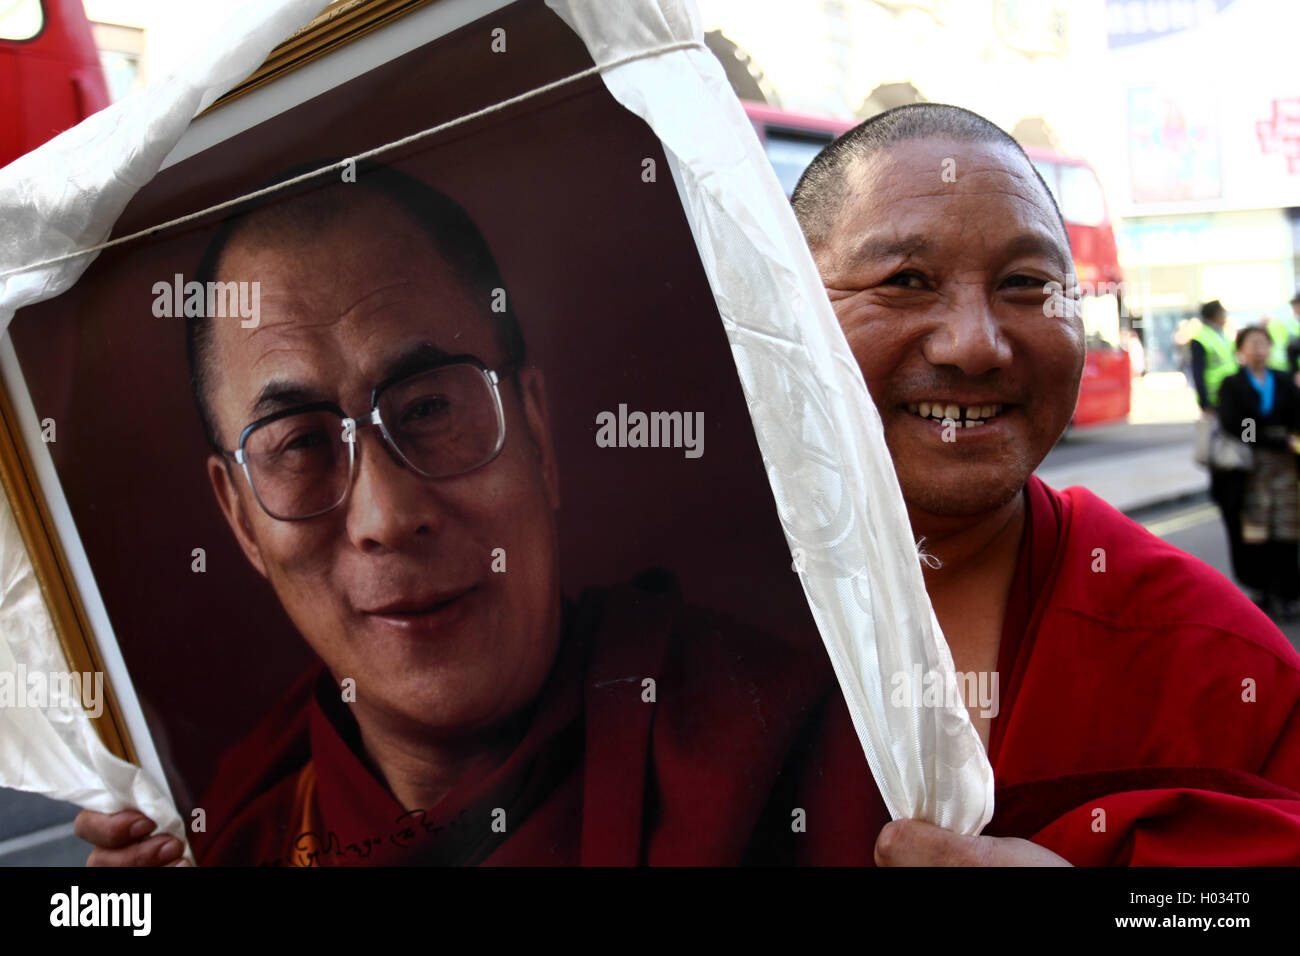 Tibetan monk with a framed picture of Dalai Lama at the demonstration for free Tibet, London, UK. - Stock Image